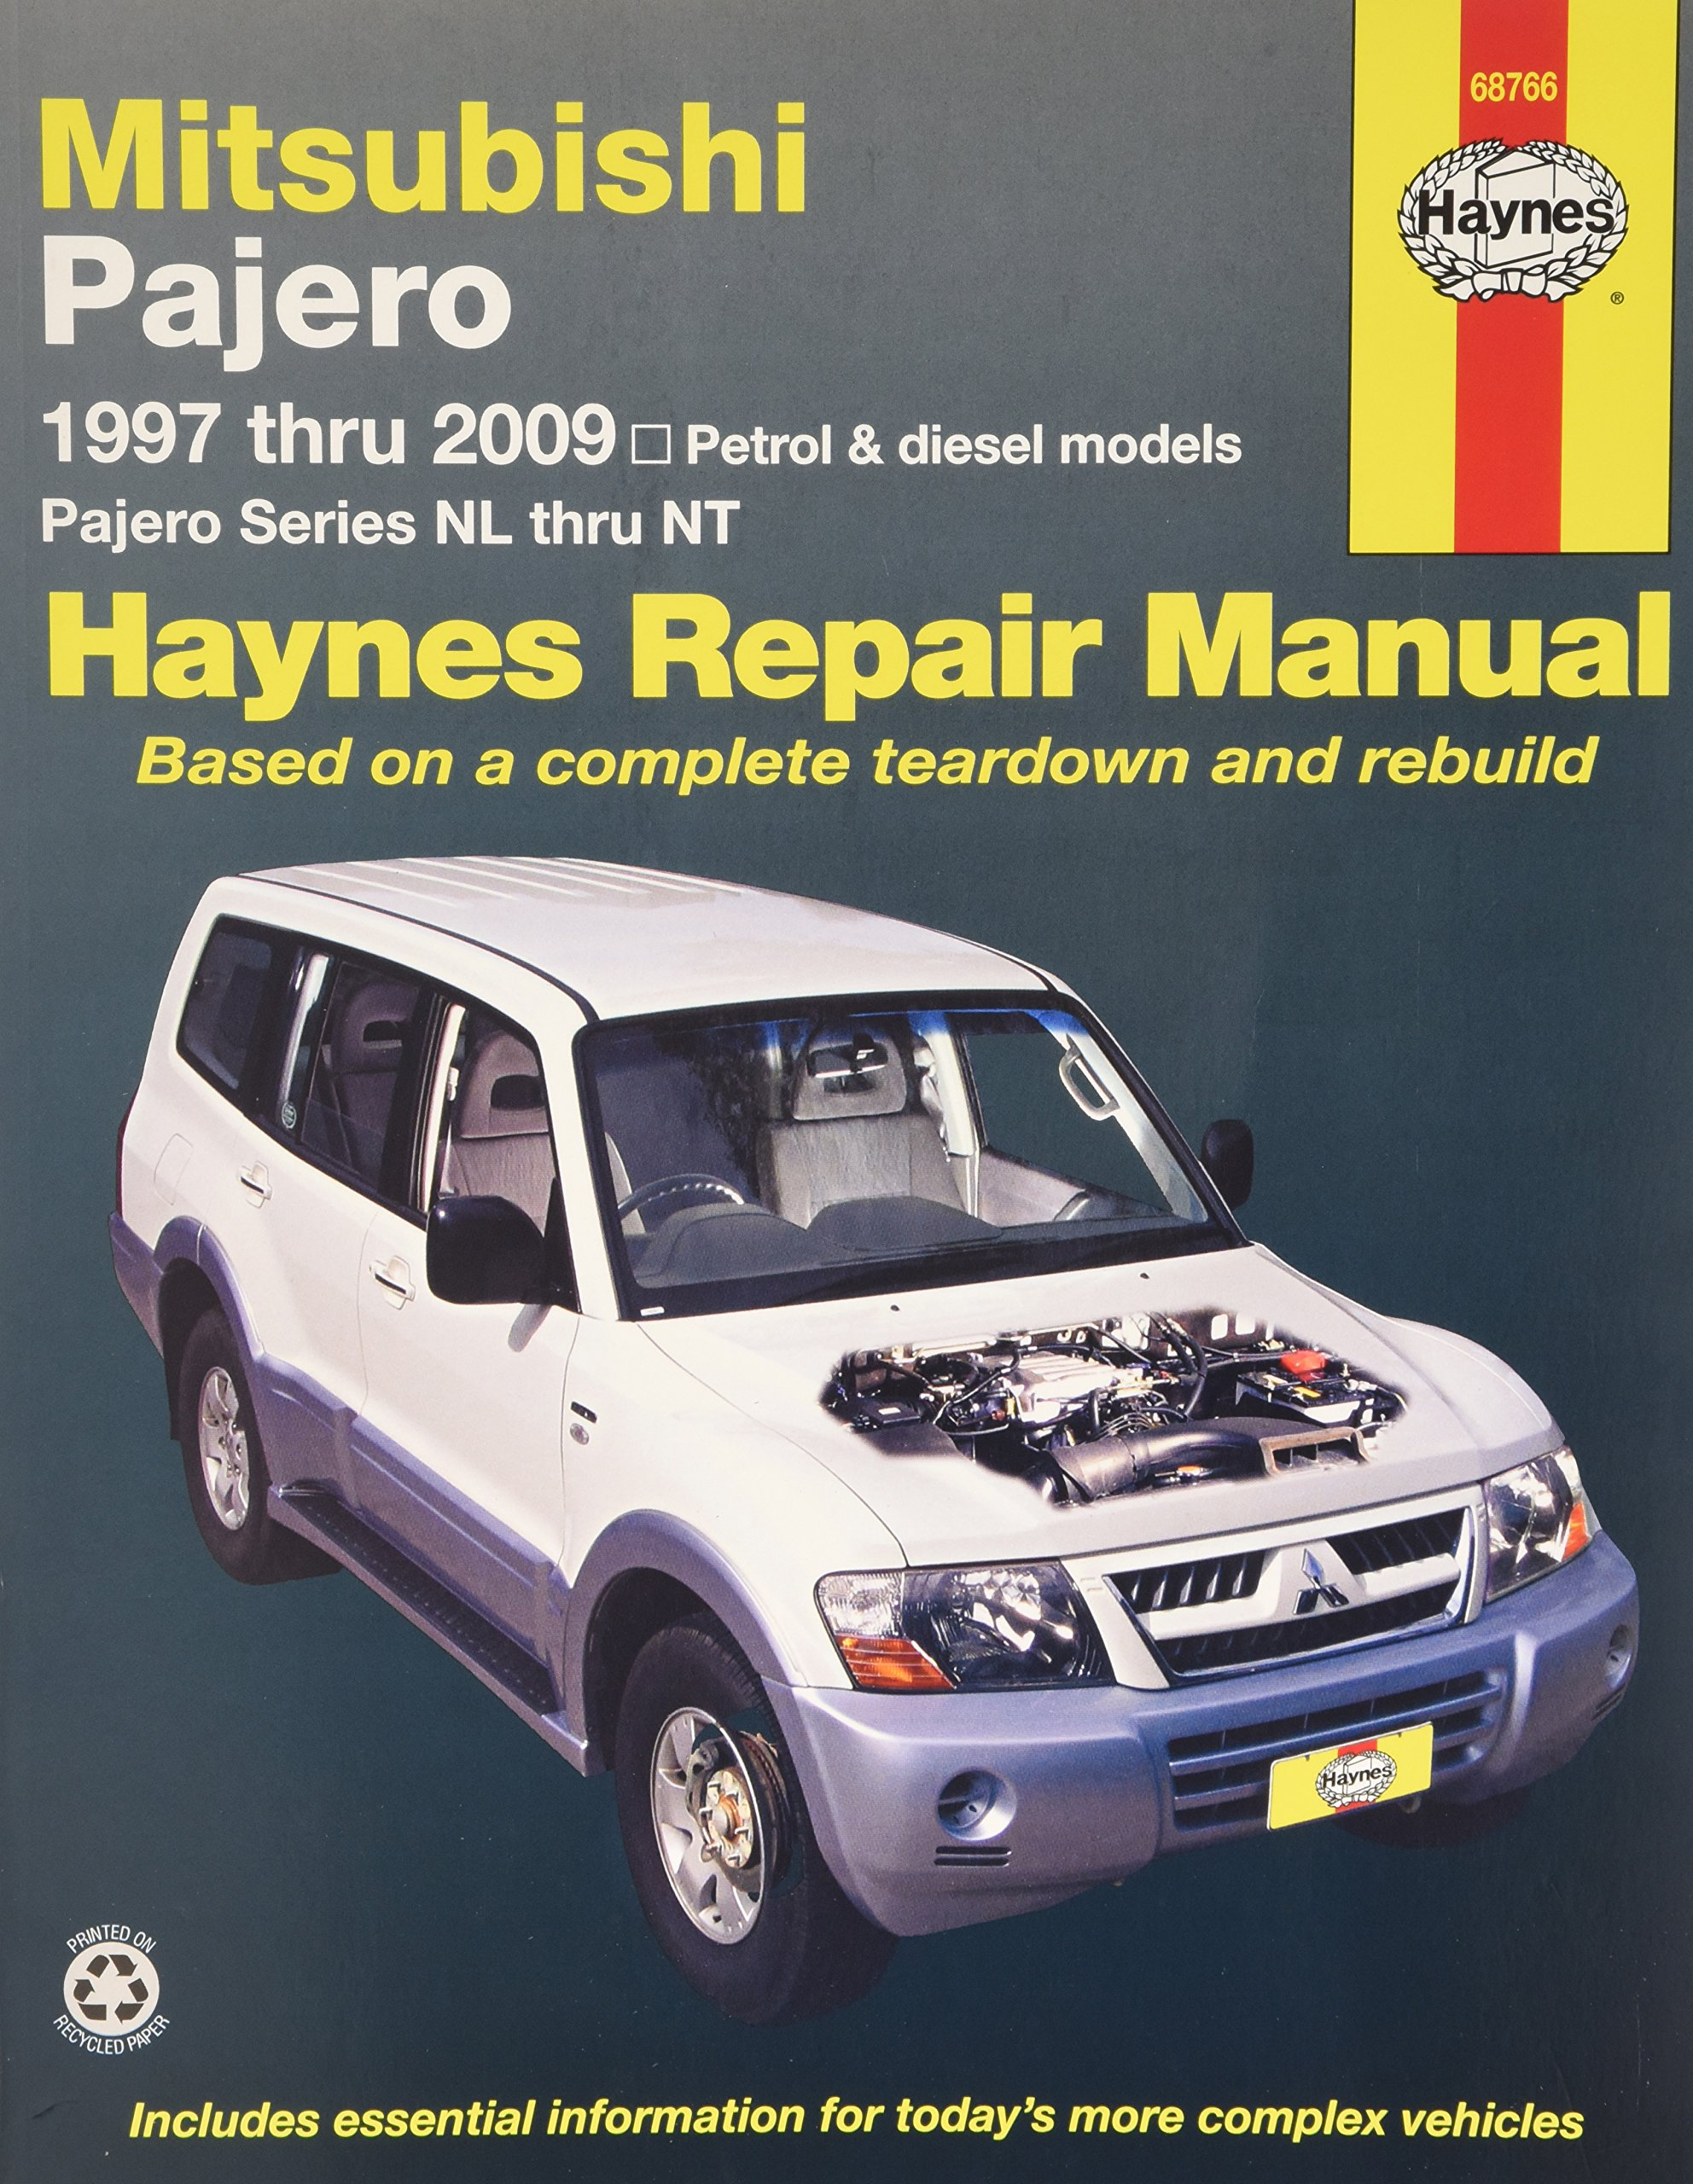 mitsubishi pajero automotive repair manual 97 09 haynes automotive rh amazon com mitsubishi pajero repair manual pdf pajero workshop manual free download